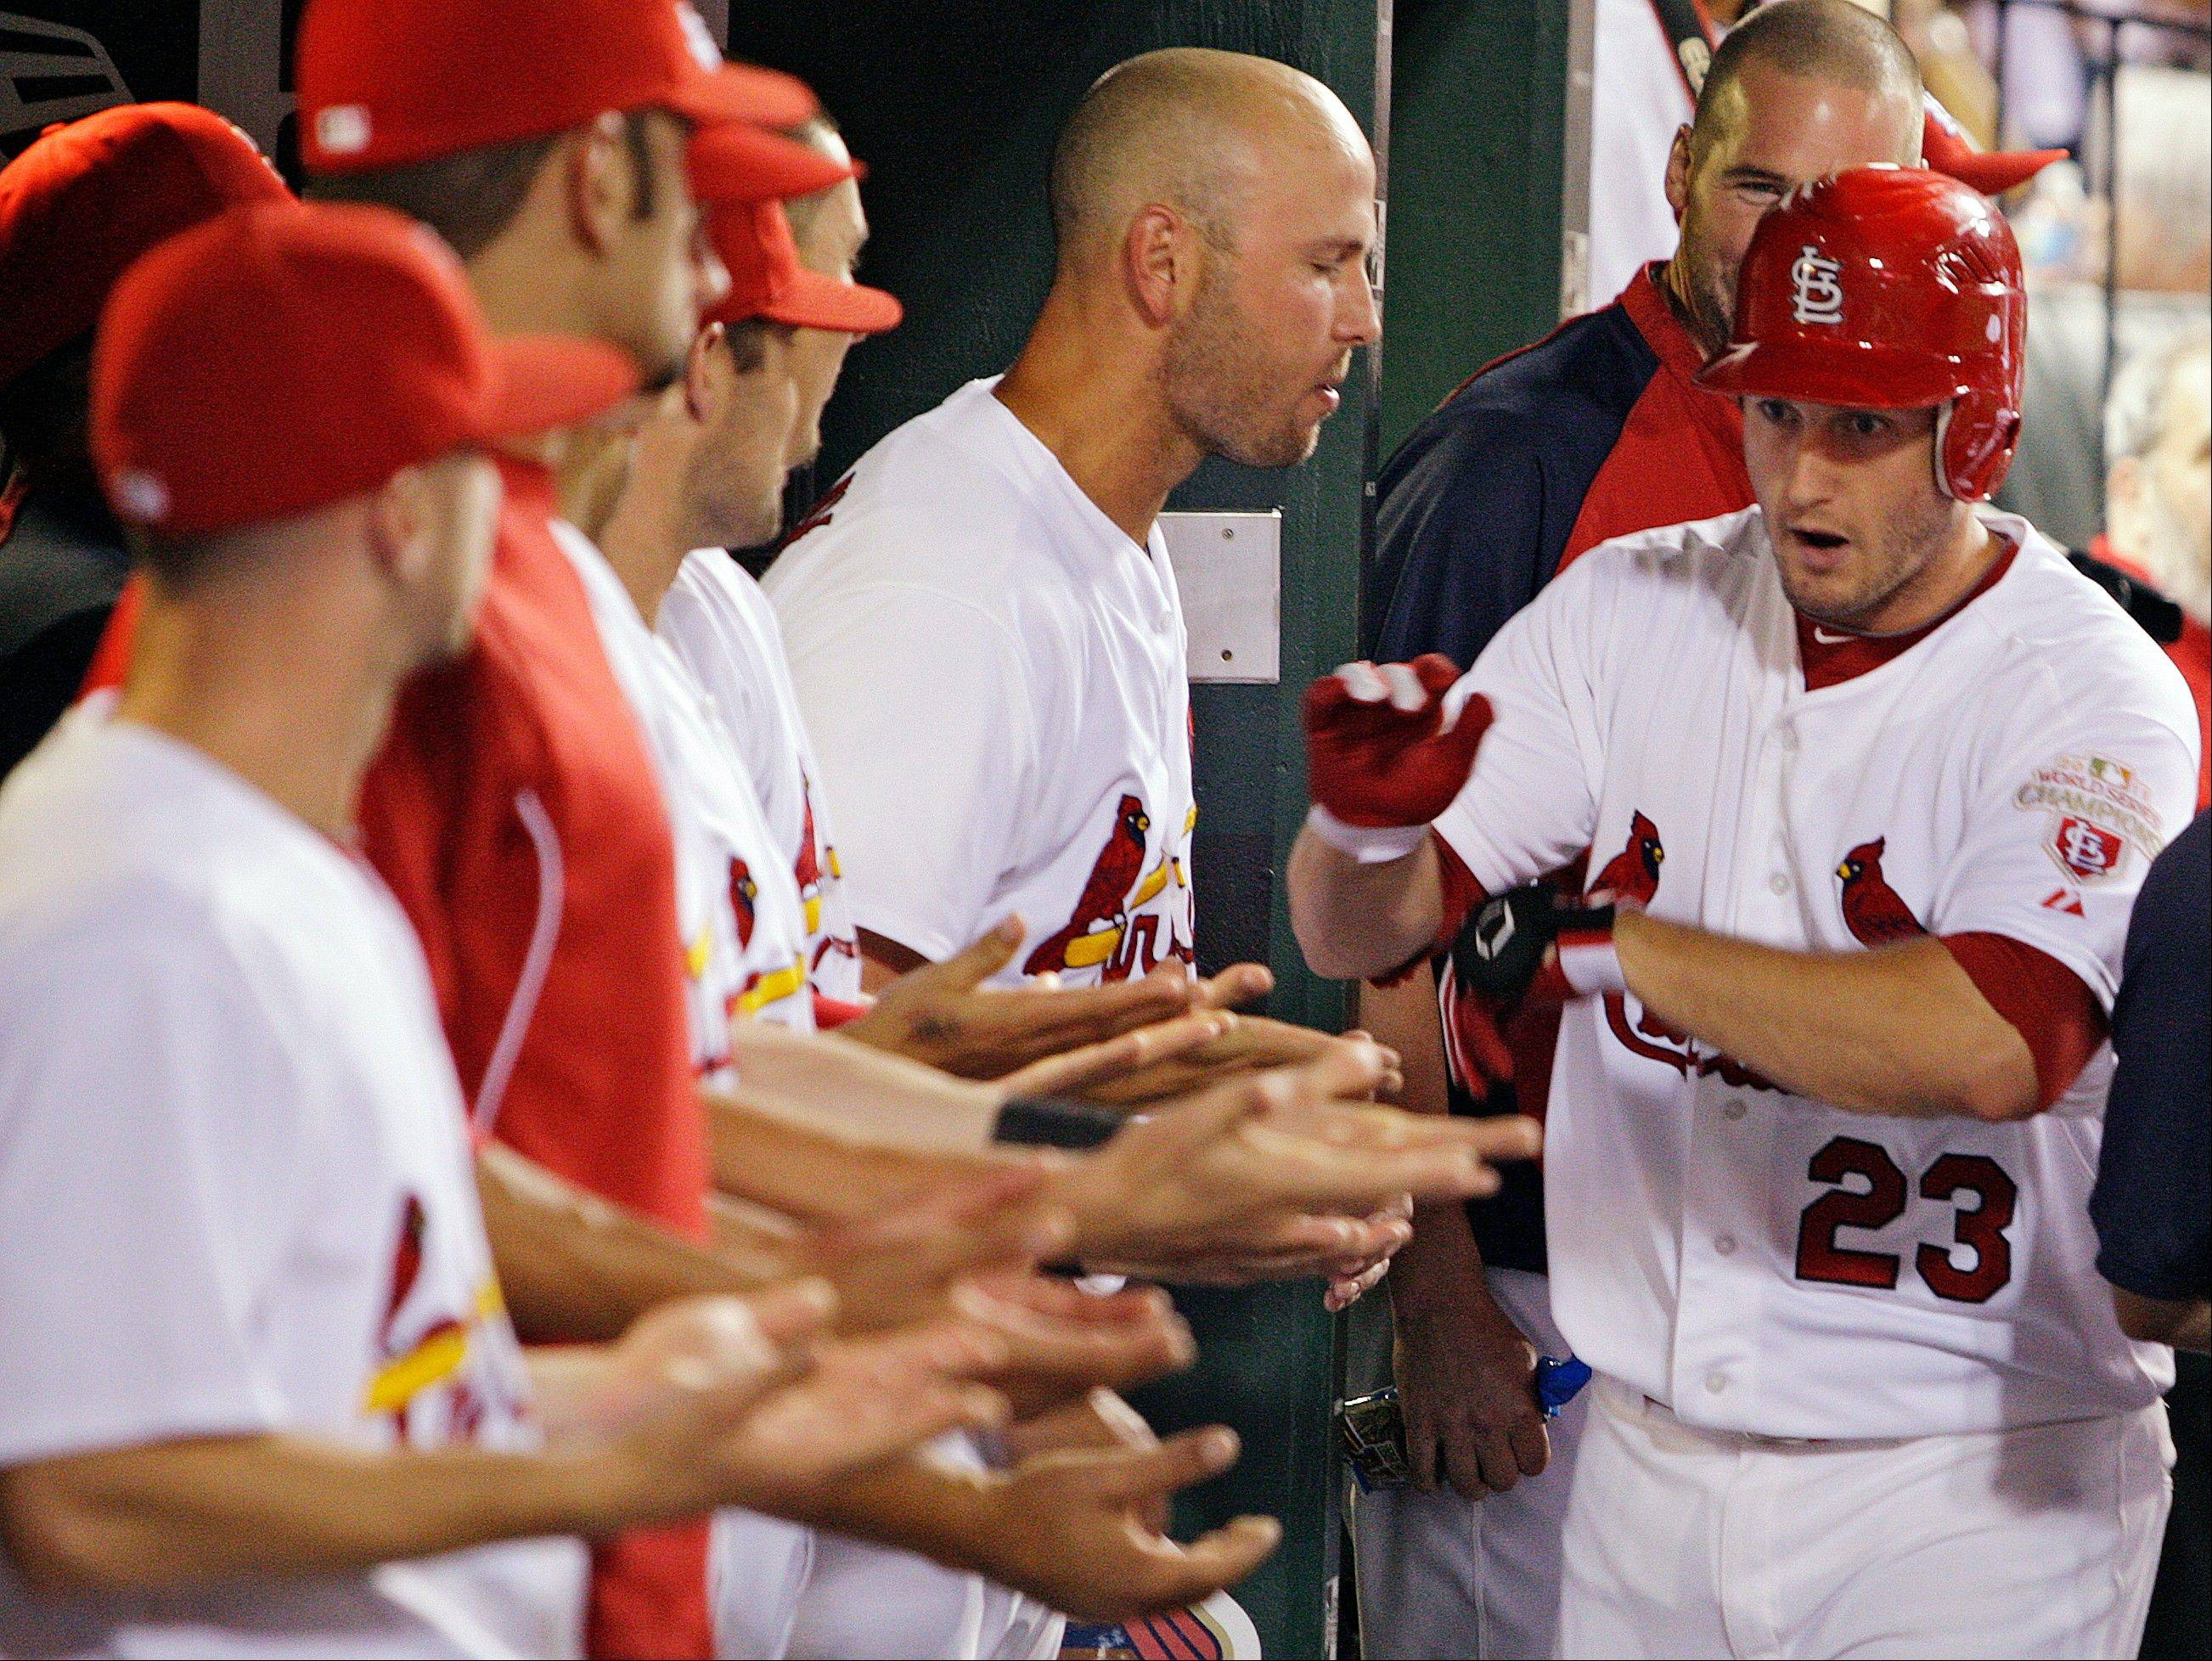 St. Louis Cardinals third baseman David Freese celebrates in the dugout Wednesday after hitting a two-run home run in the fourth inning against the Arizona Diamondbacks.